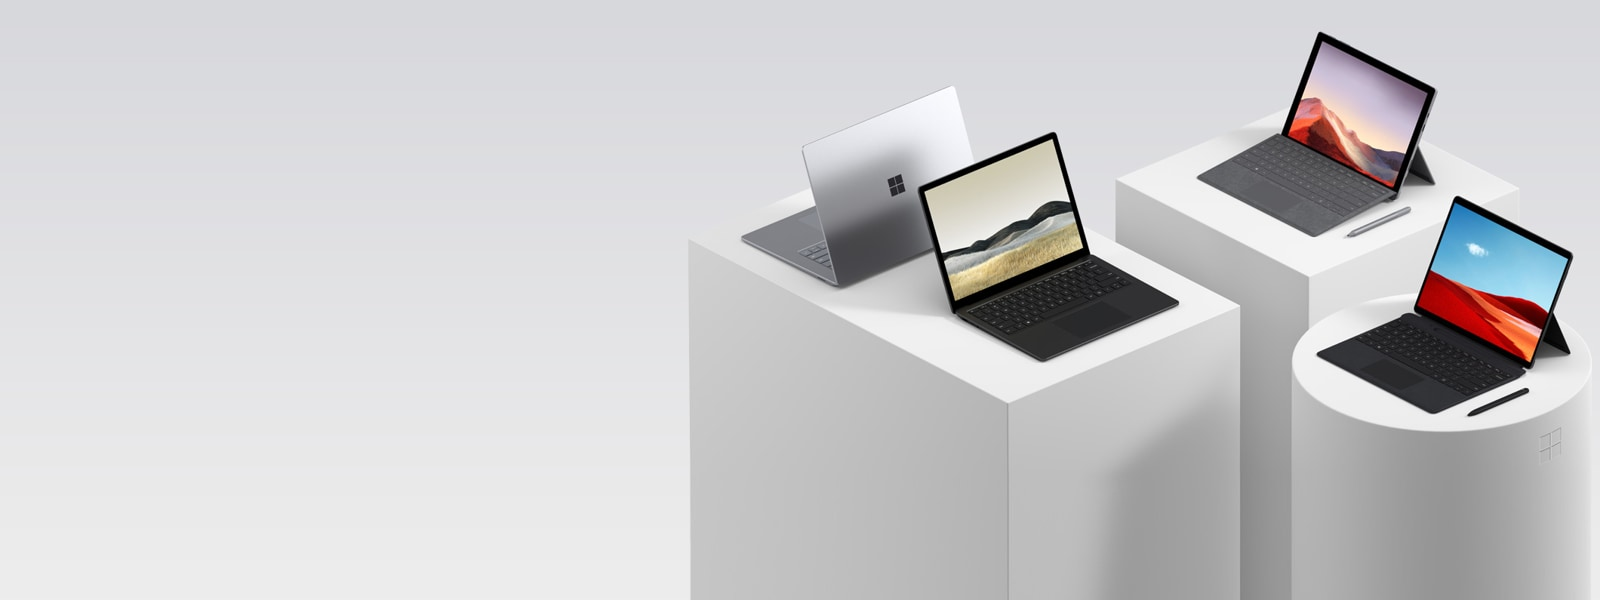 A display of several Surface computers